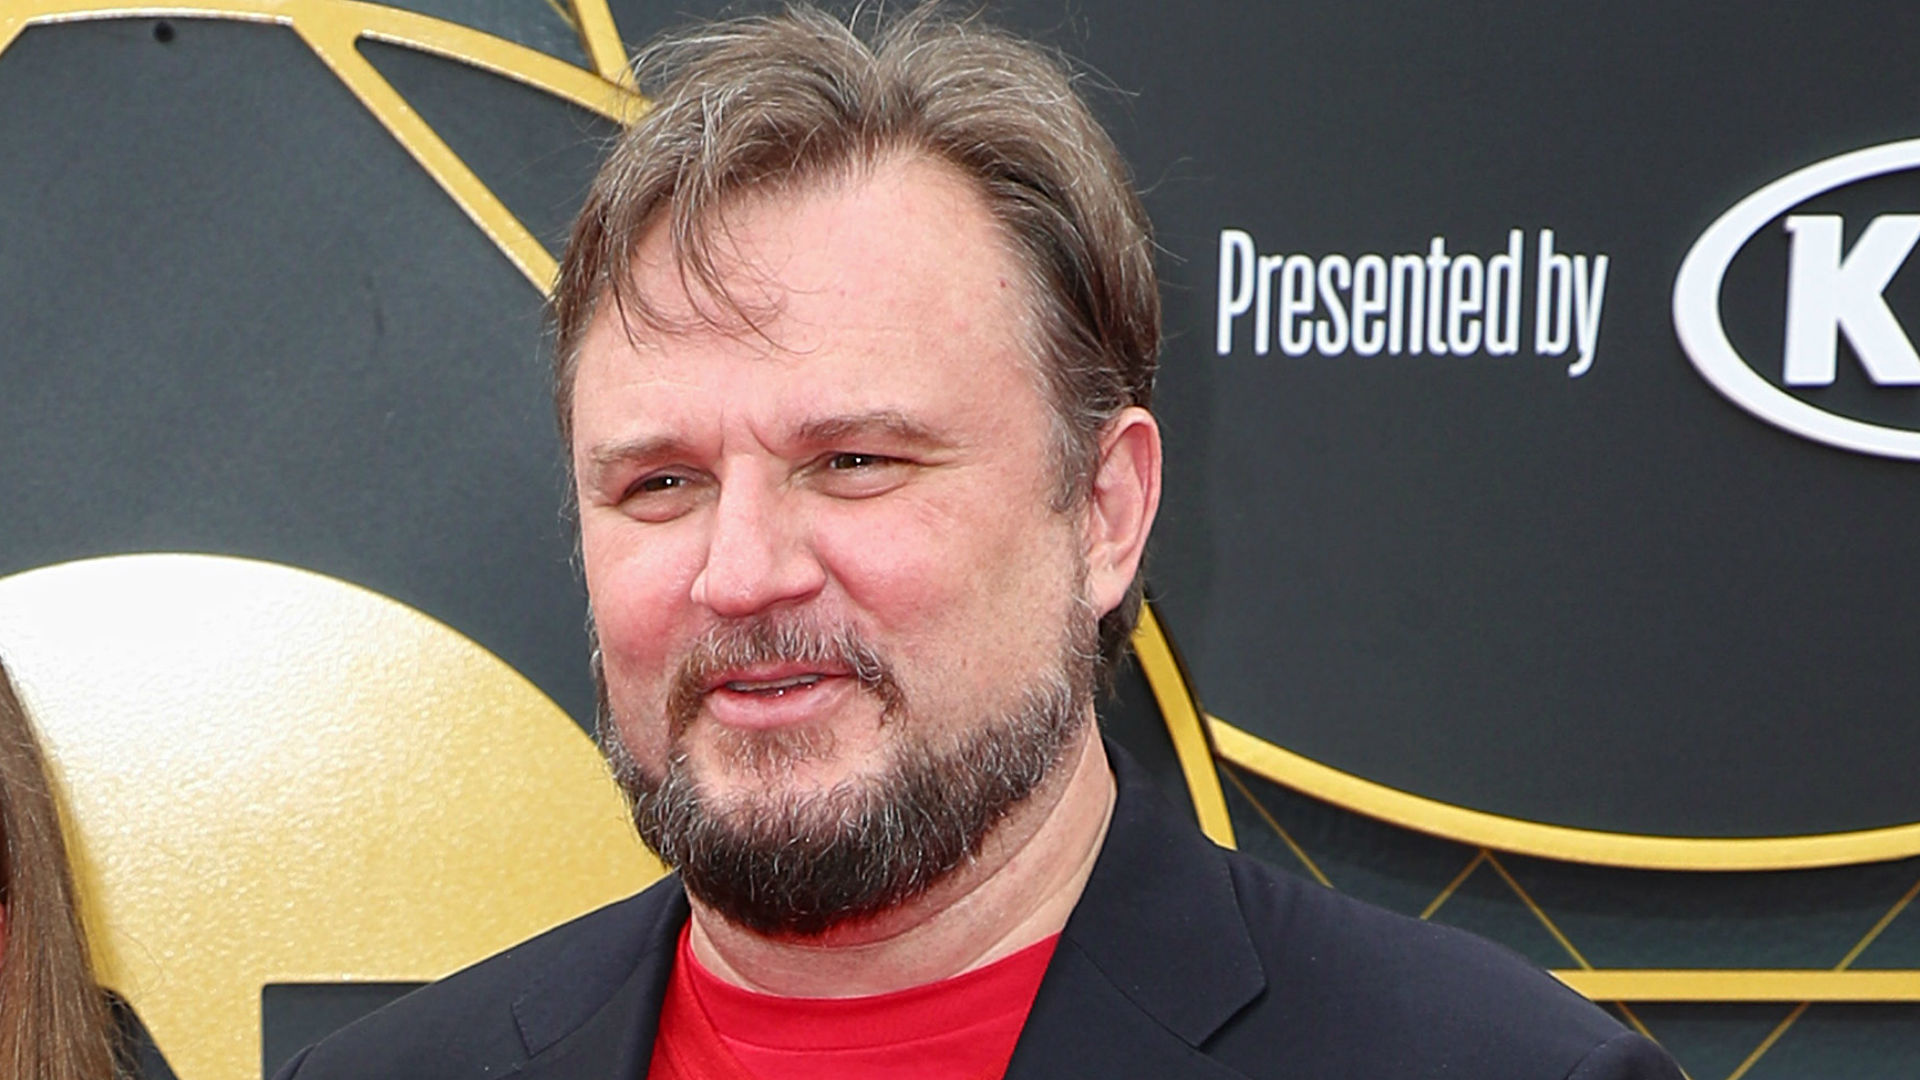 The Daryl Morey controversy, explained: How a tweet created a costly rift between the NBA and China